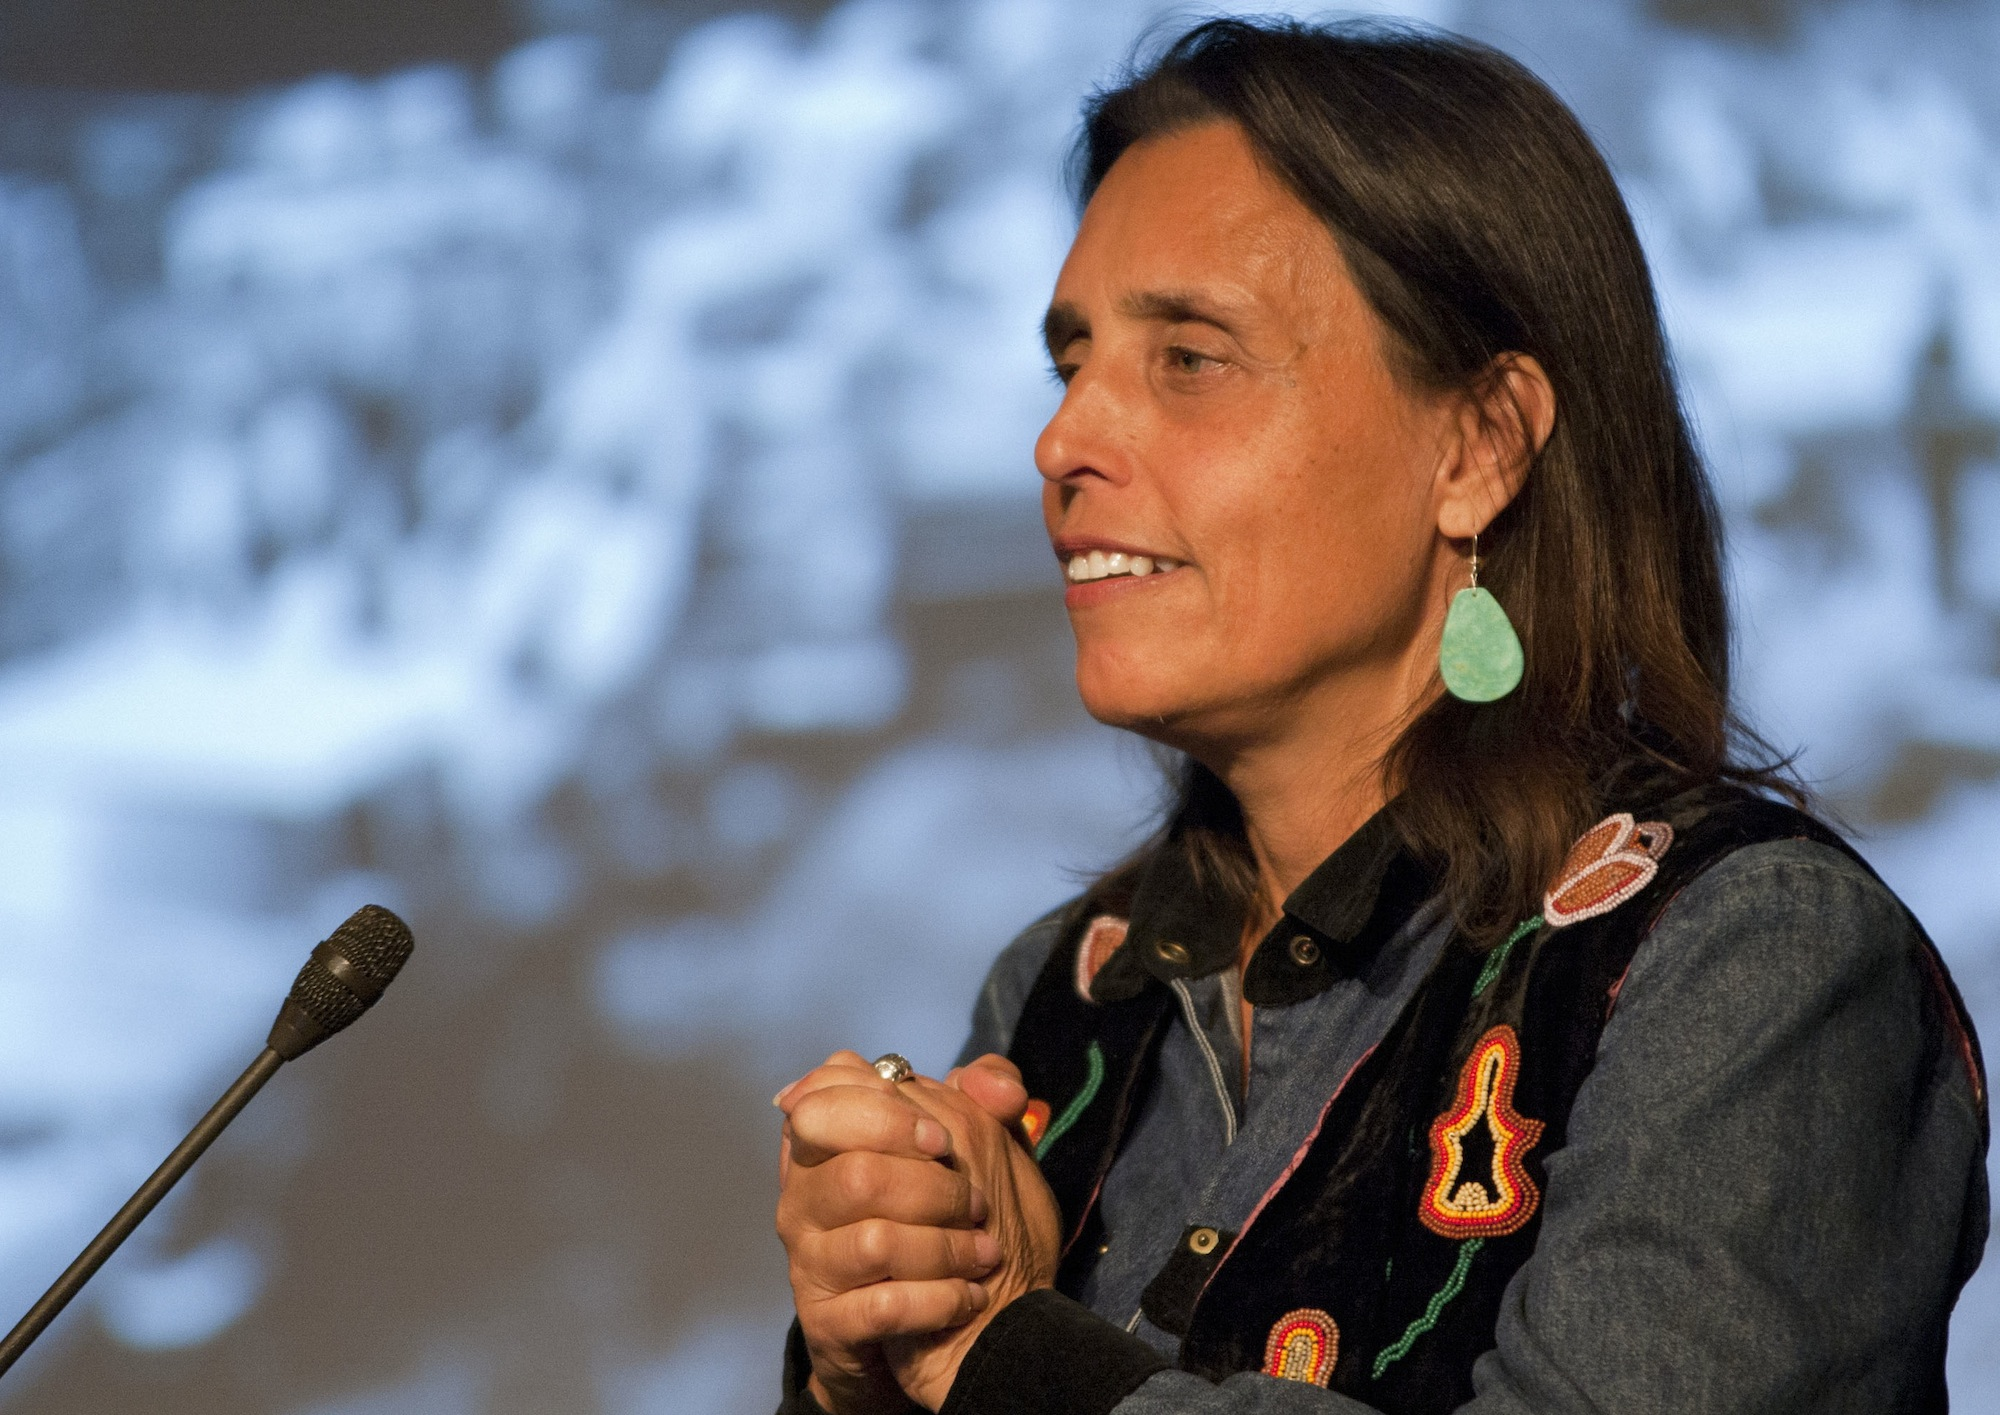 Winona LaDuke: Consider marijuana and hemp in Indian Country